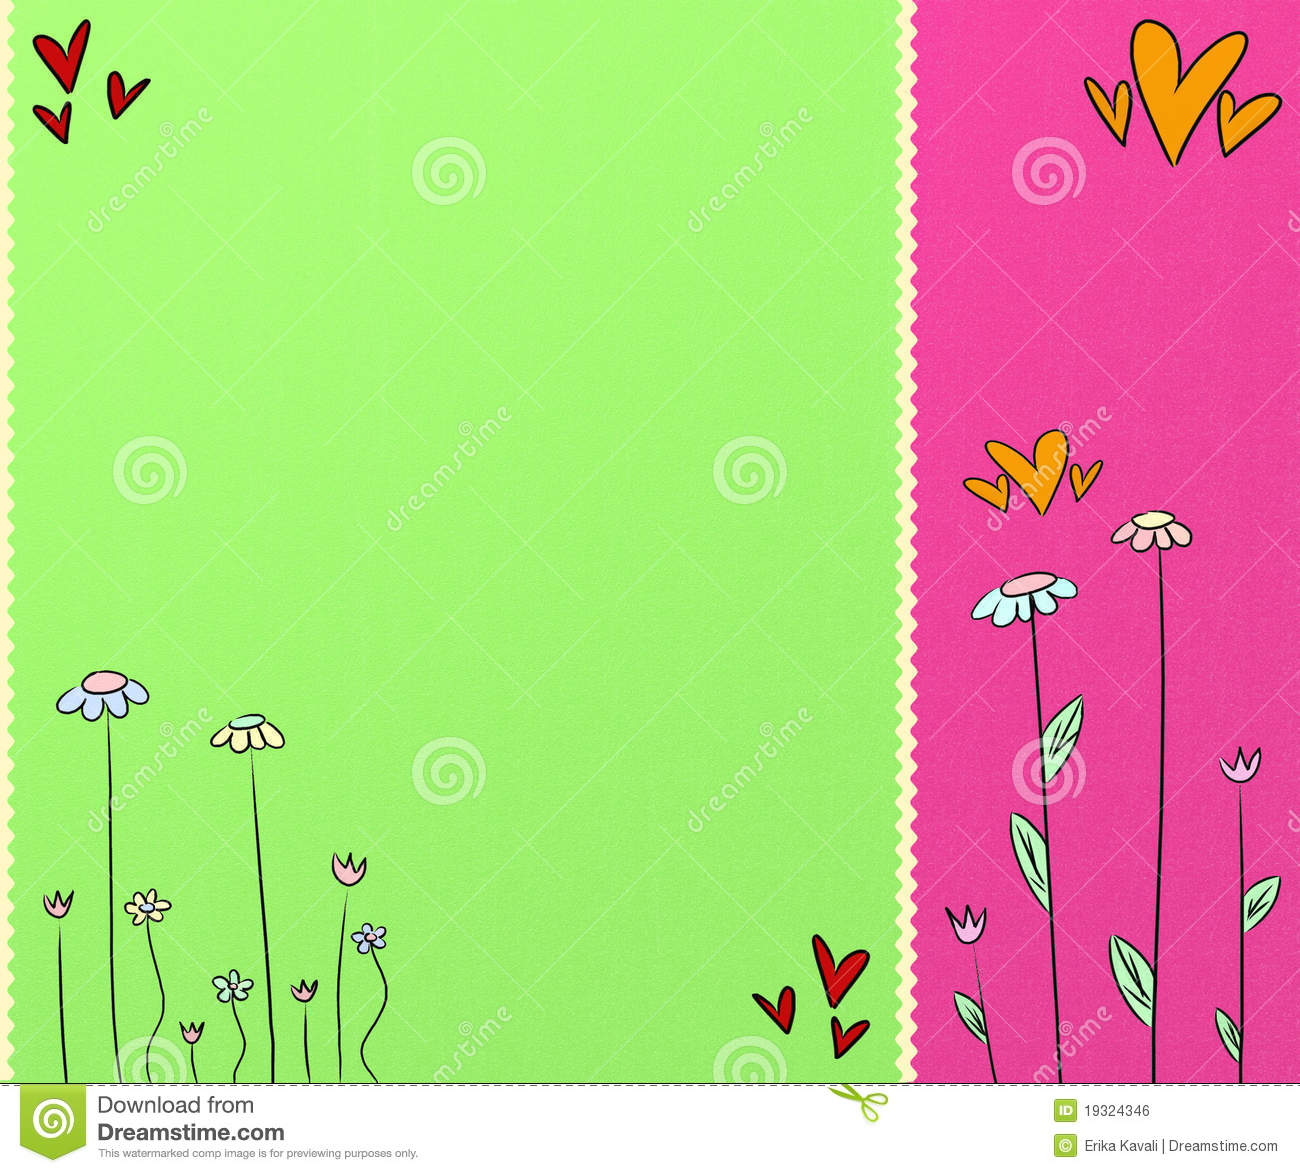 Cute Colorful Background Royalty Free Stock Image Image